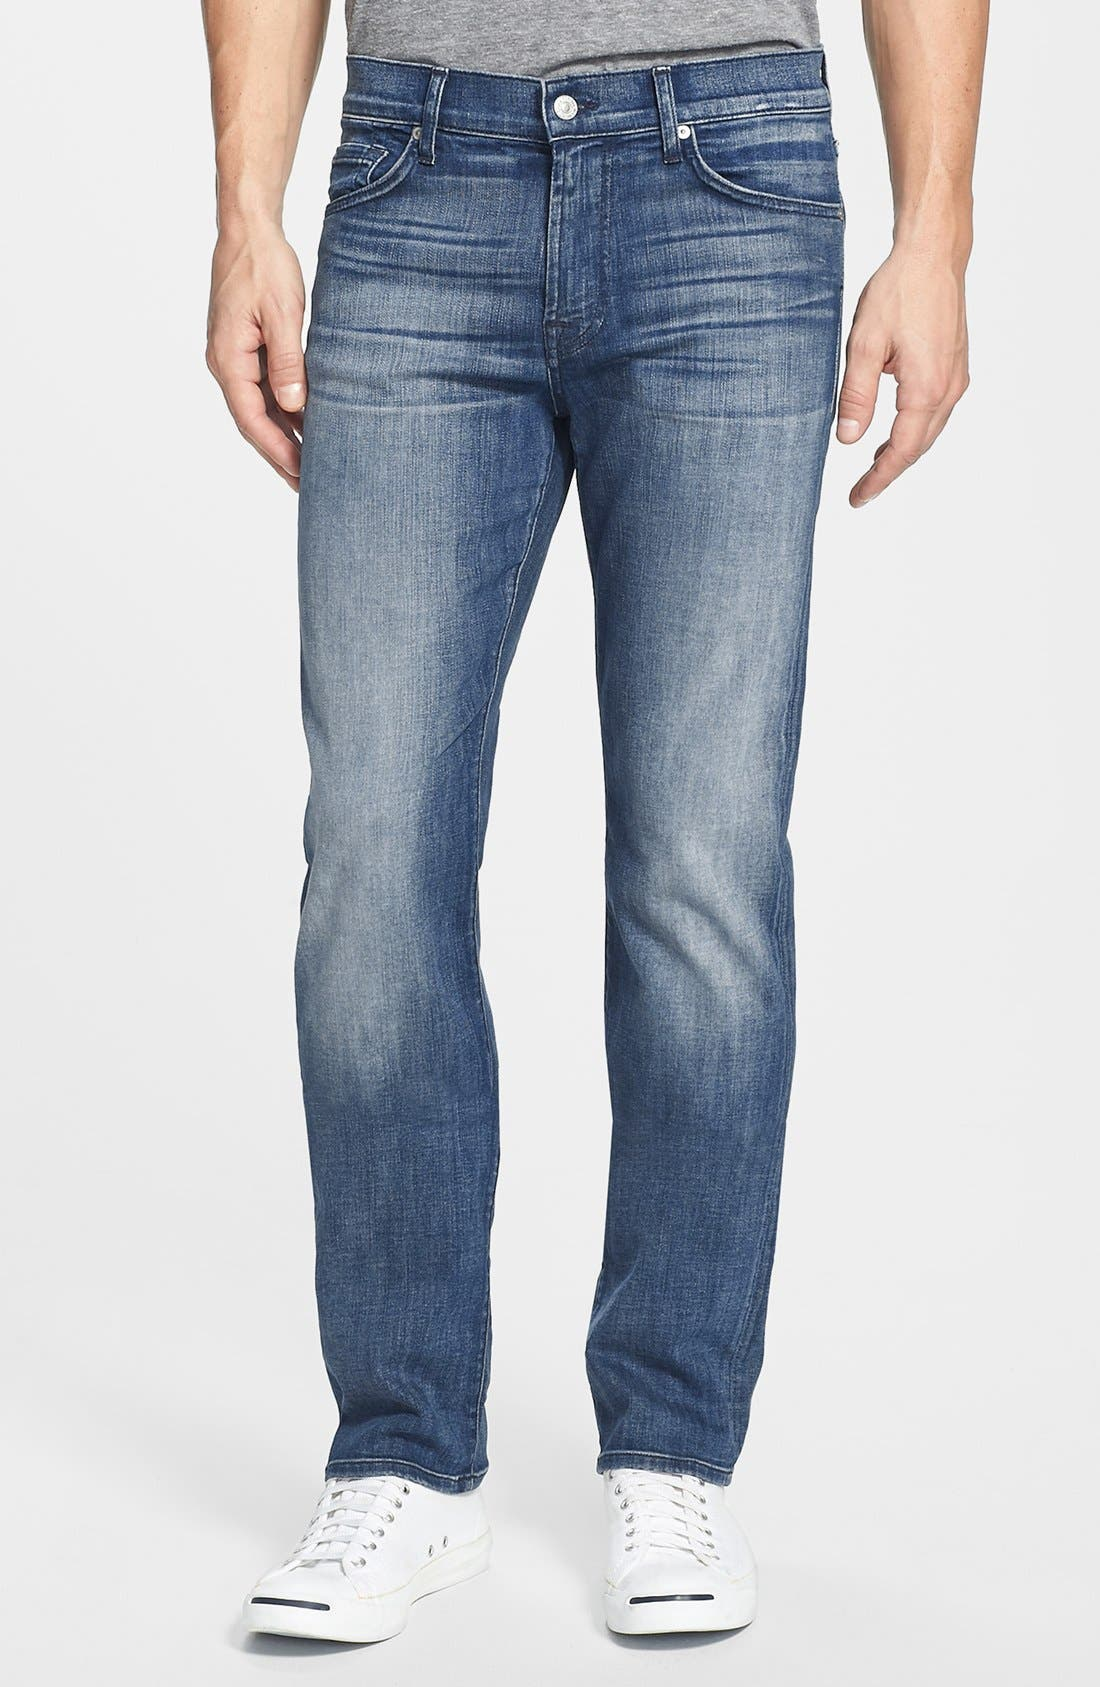 Main Image - 7 For All Mankind® 'Slimmy - Luxe Performance' Slim Fit Jeans (Nakitta Blue)